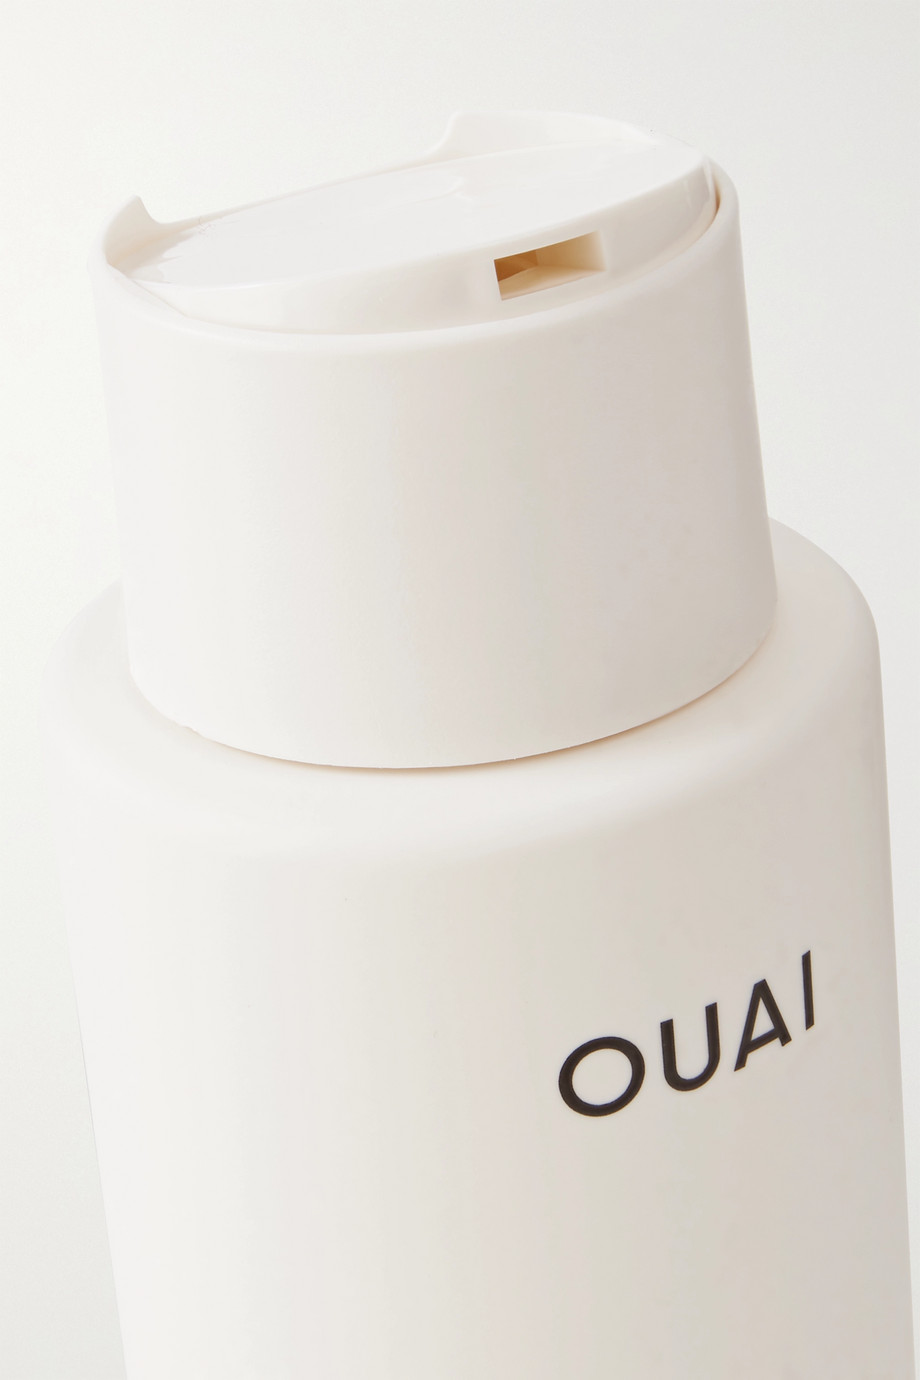 OUAI HAIRCARE Fine Hair Conditioner, 300ml